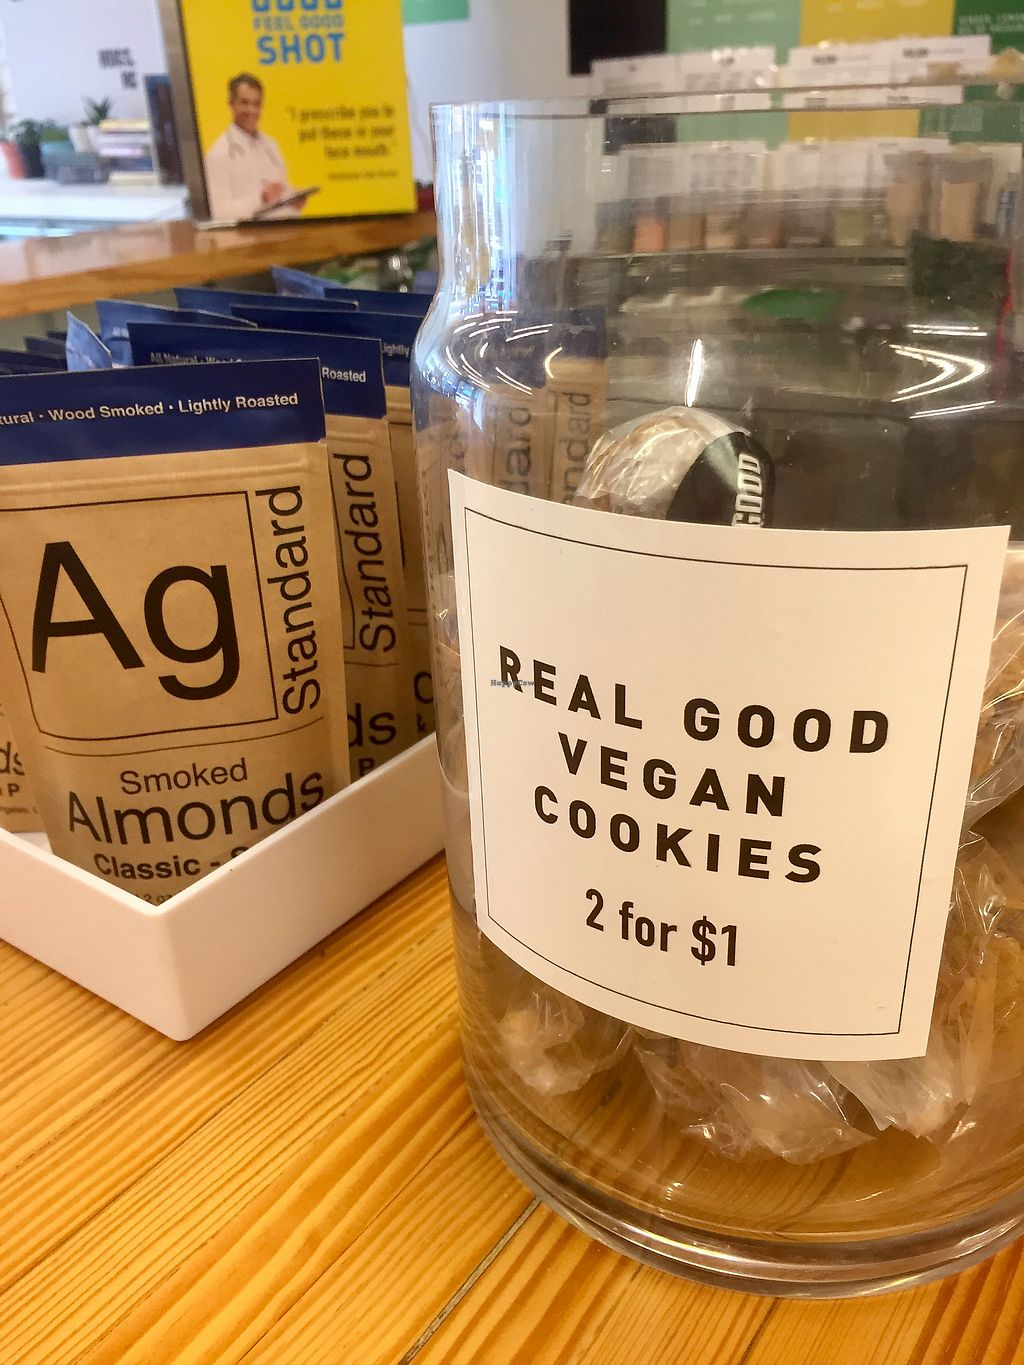 """Photo of Real Good Juice Co. - Wells  by <a href=""""/members/profile/happycowgirl"""">happycowgirl</a> <br/>Vegan treats! <br/> September 29, 2017  - <a href='/contact/abuse/image/91541/309918'>Report</a>"""